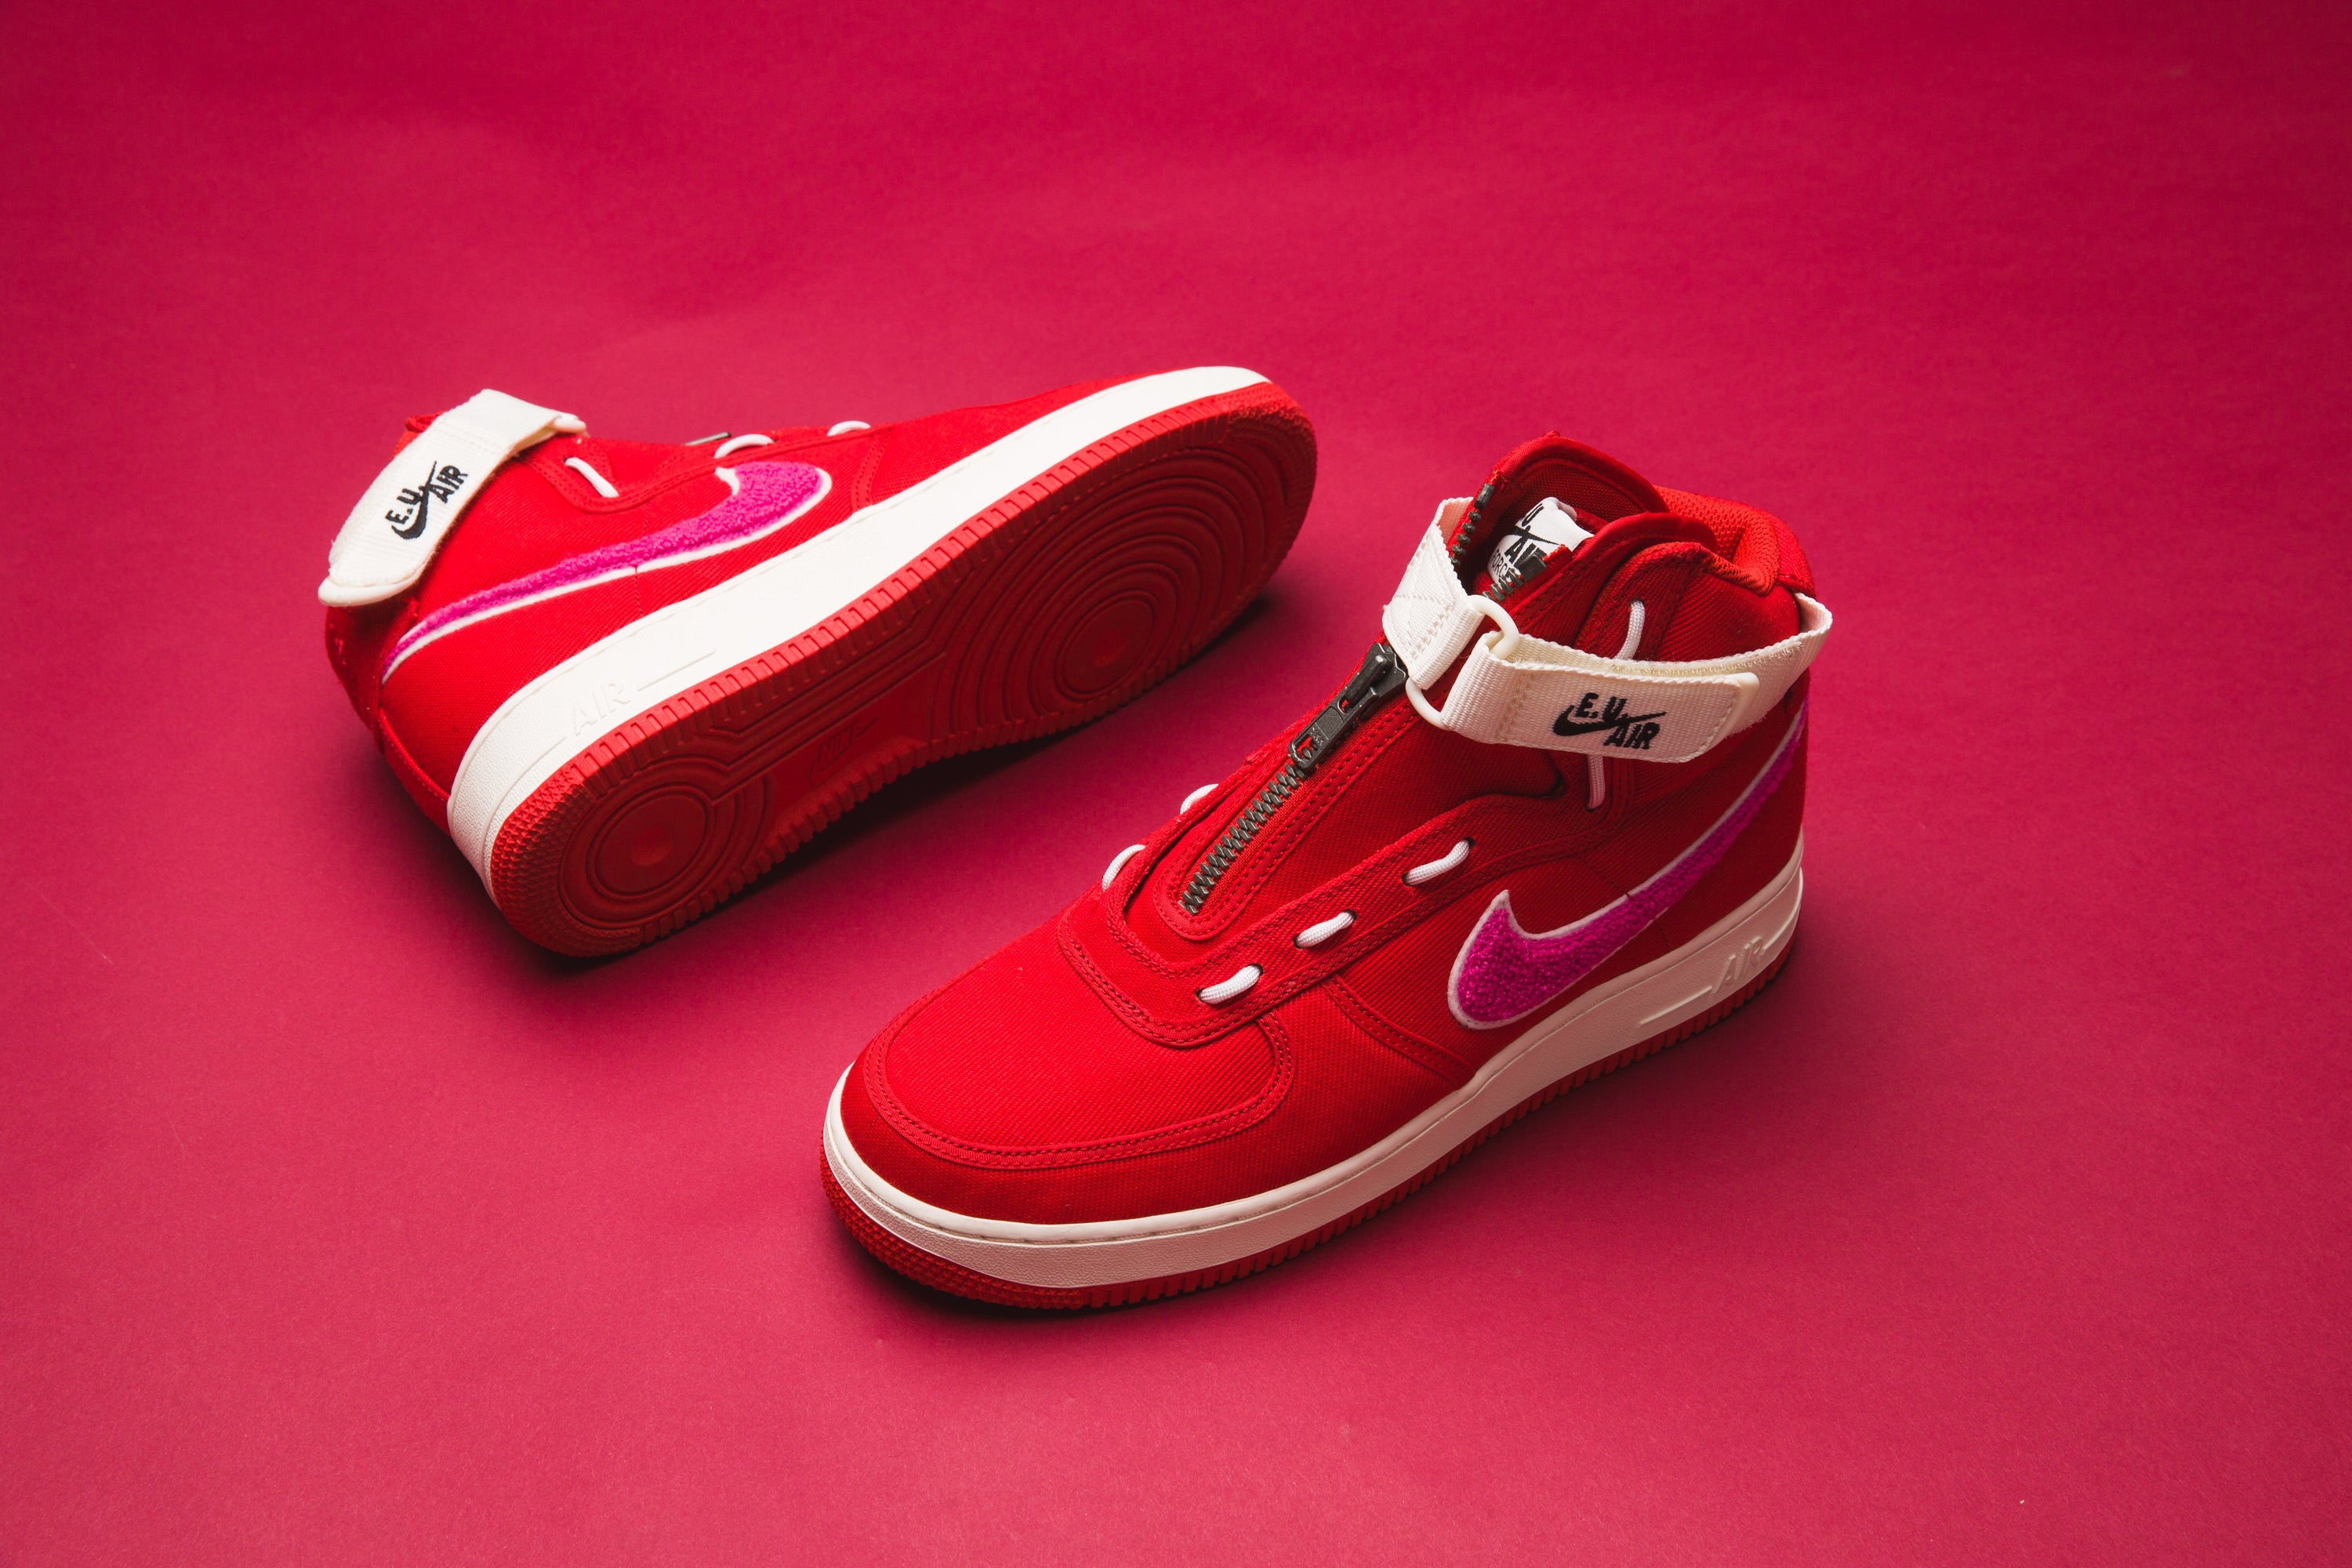 Emotionally Unavailable x Nike Air